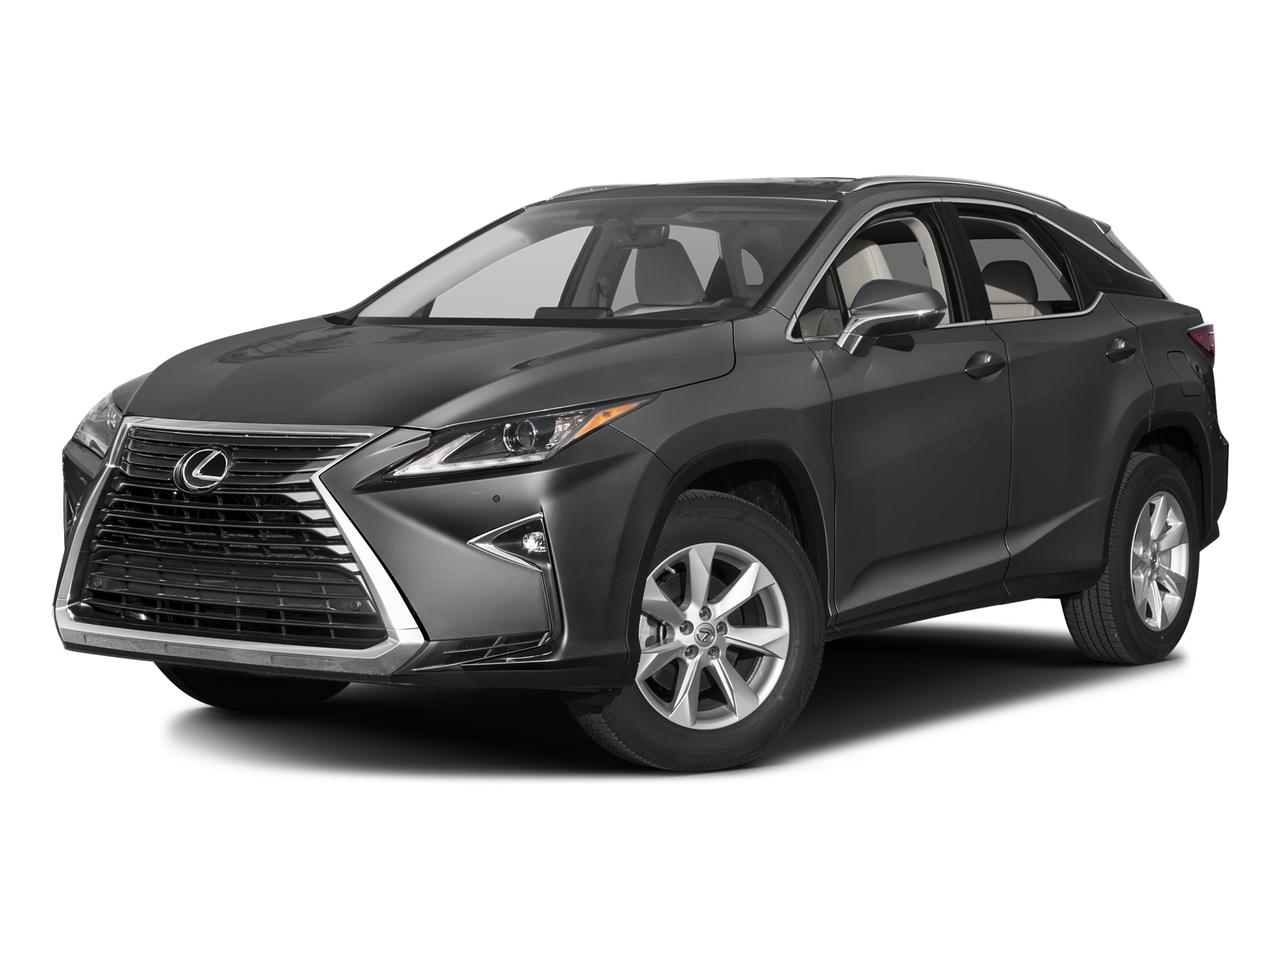 2016 Lexus RX 350 Vehicle Photo in Knoxville, TN 37912